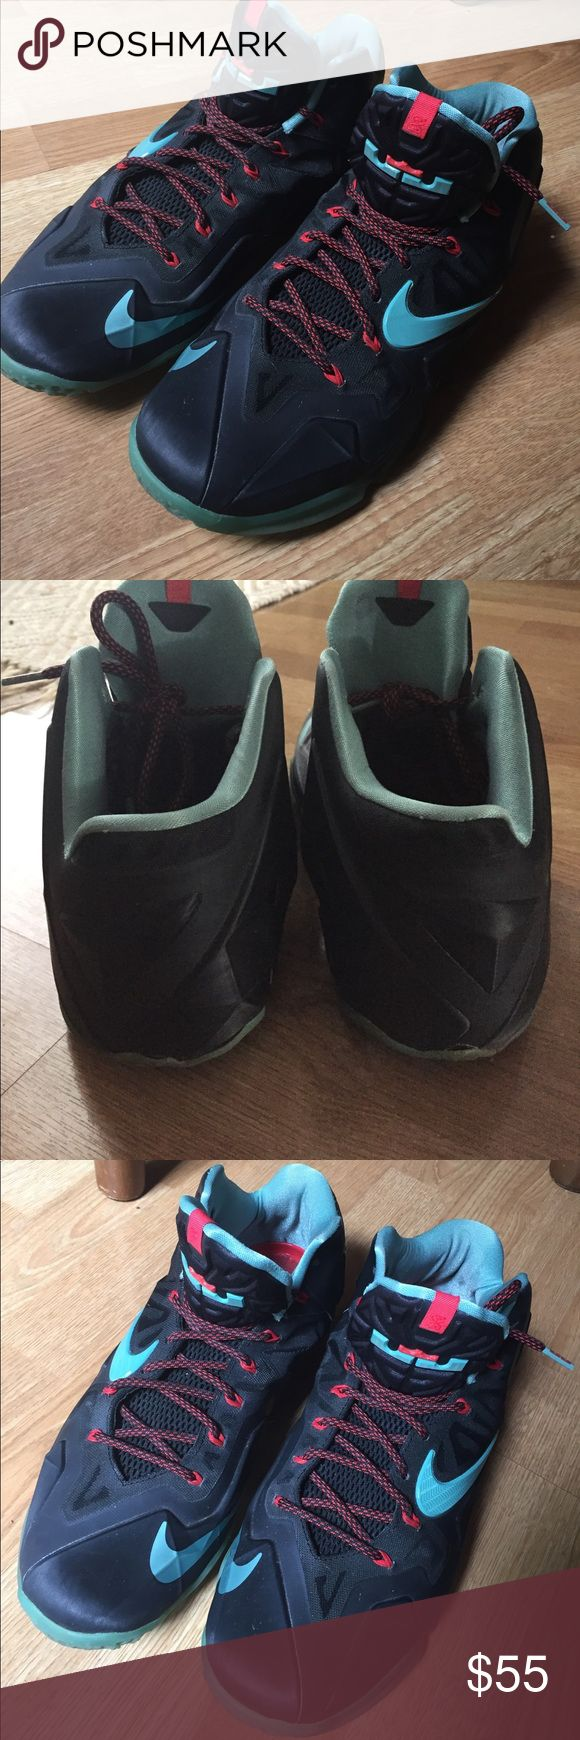 Nice Lebrun James shoes Good condition, well taken care of. Only little dirty in the inside but outside looks great. Nike Shoes Sneakers